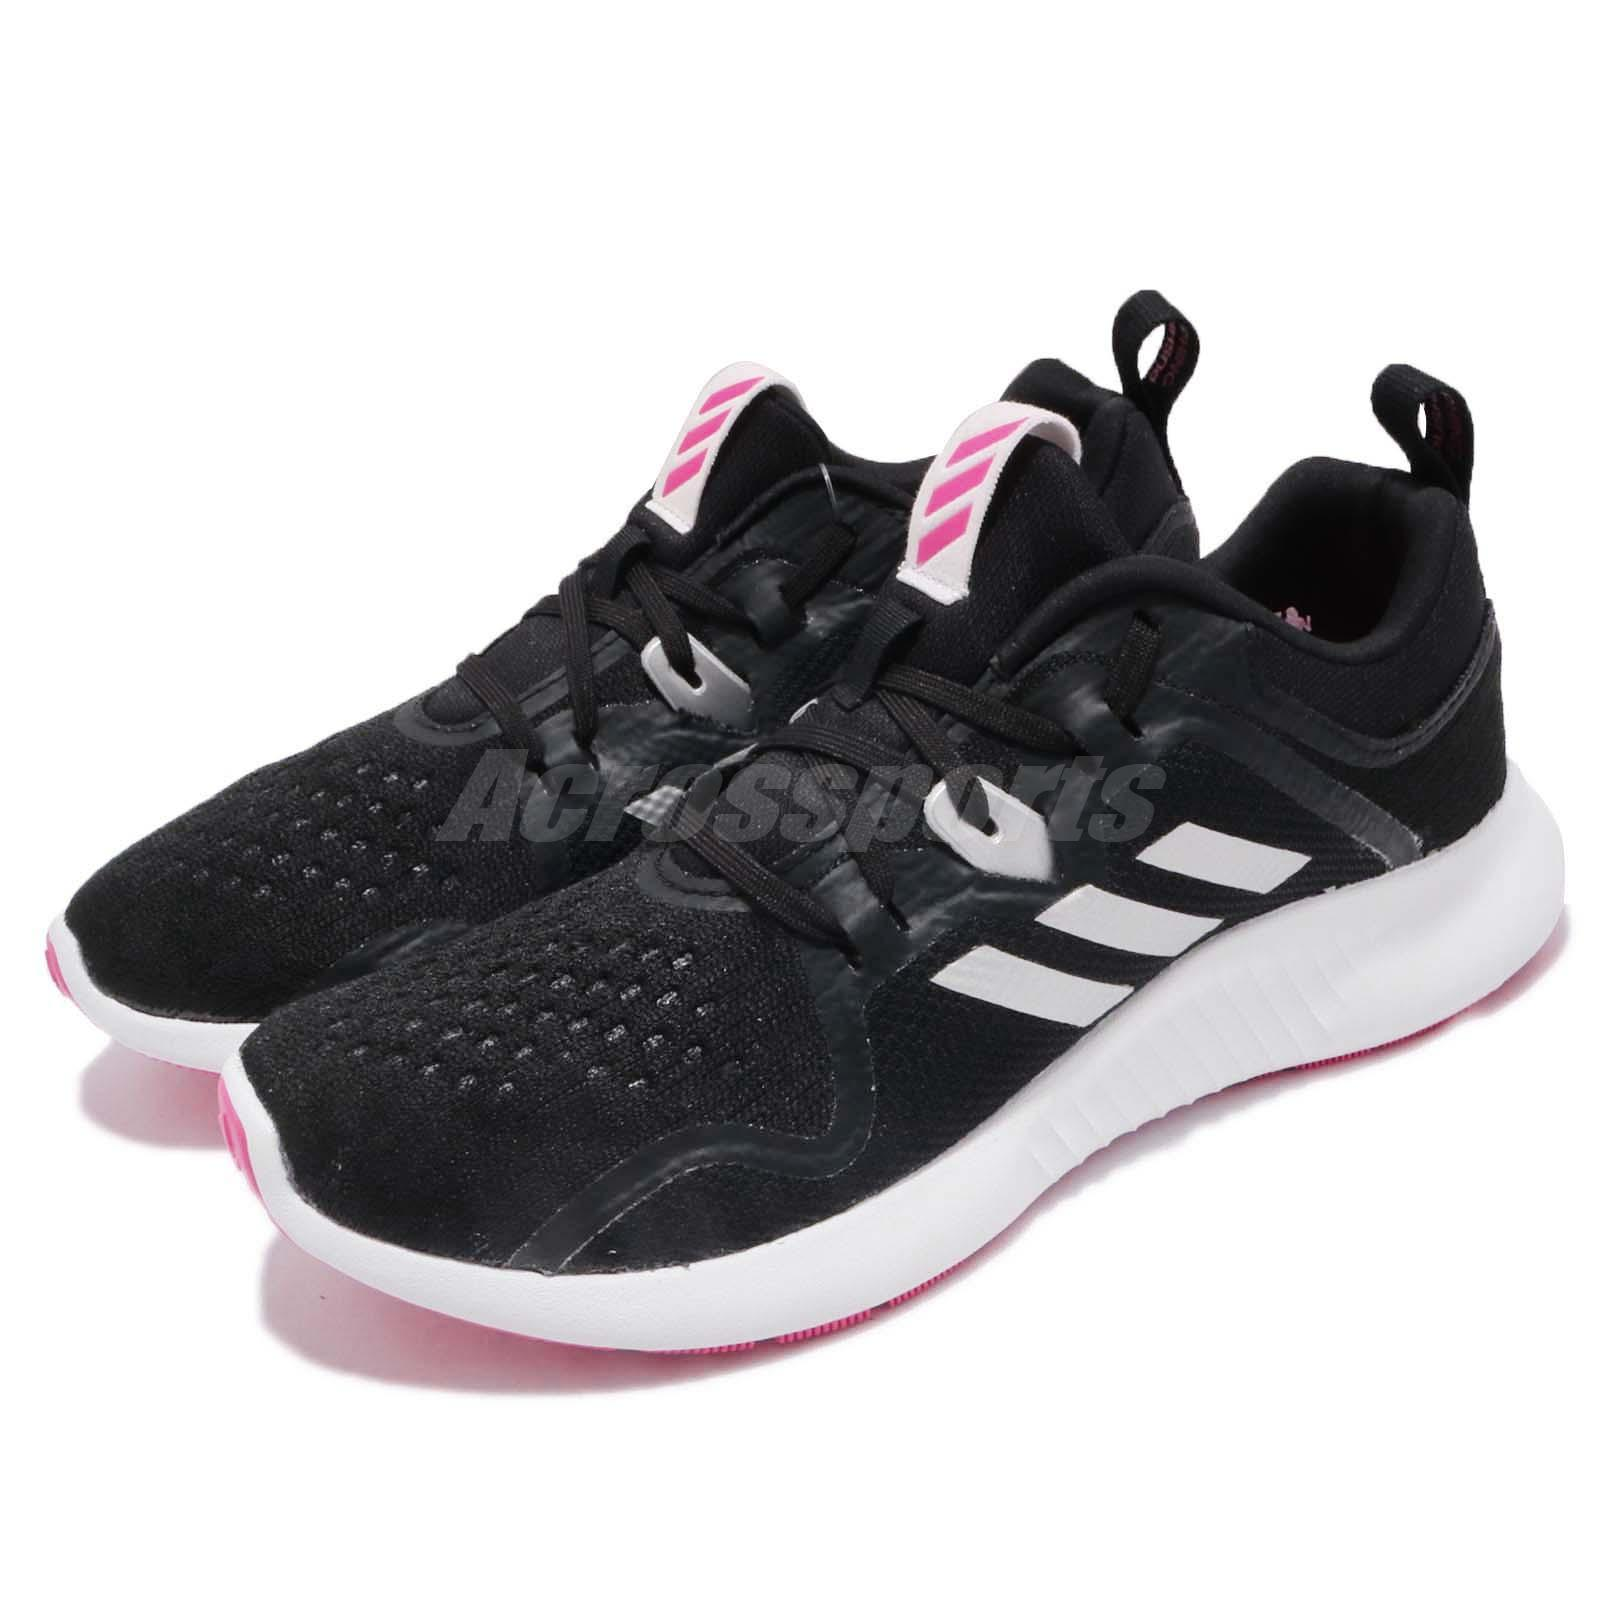 e4c03db154e59 Details about adidas EdgeBOUNCE W Black Silver Pink White Women Running  Shoes Sneakers BB7563